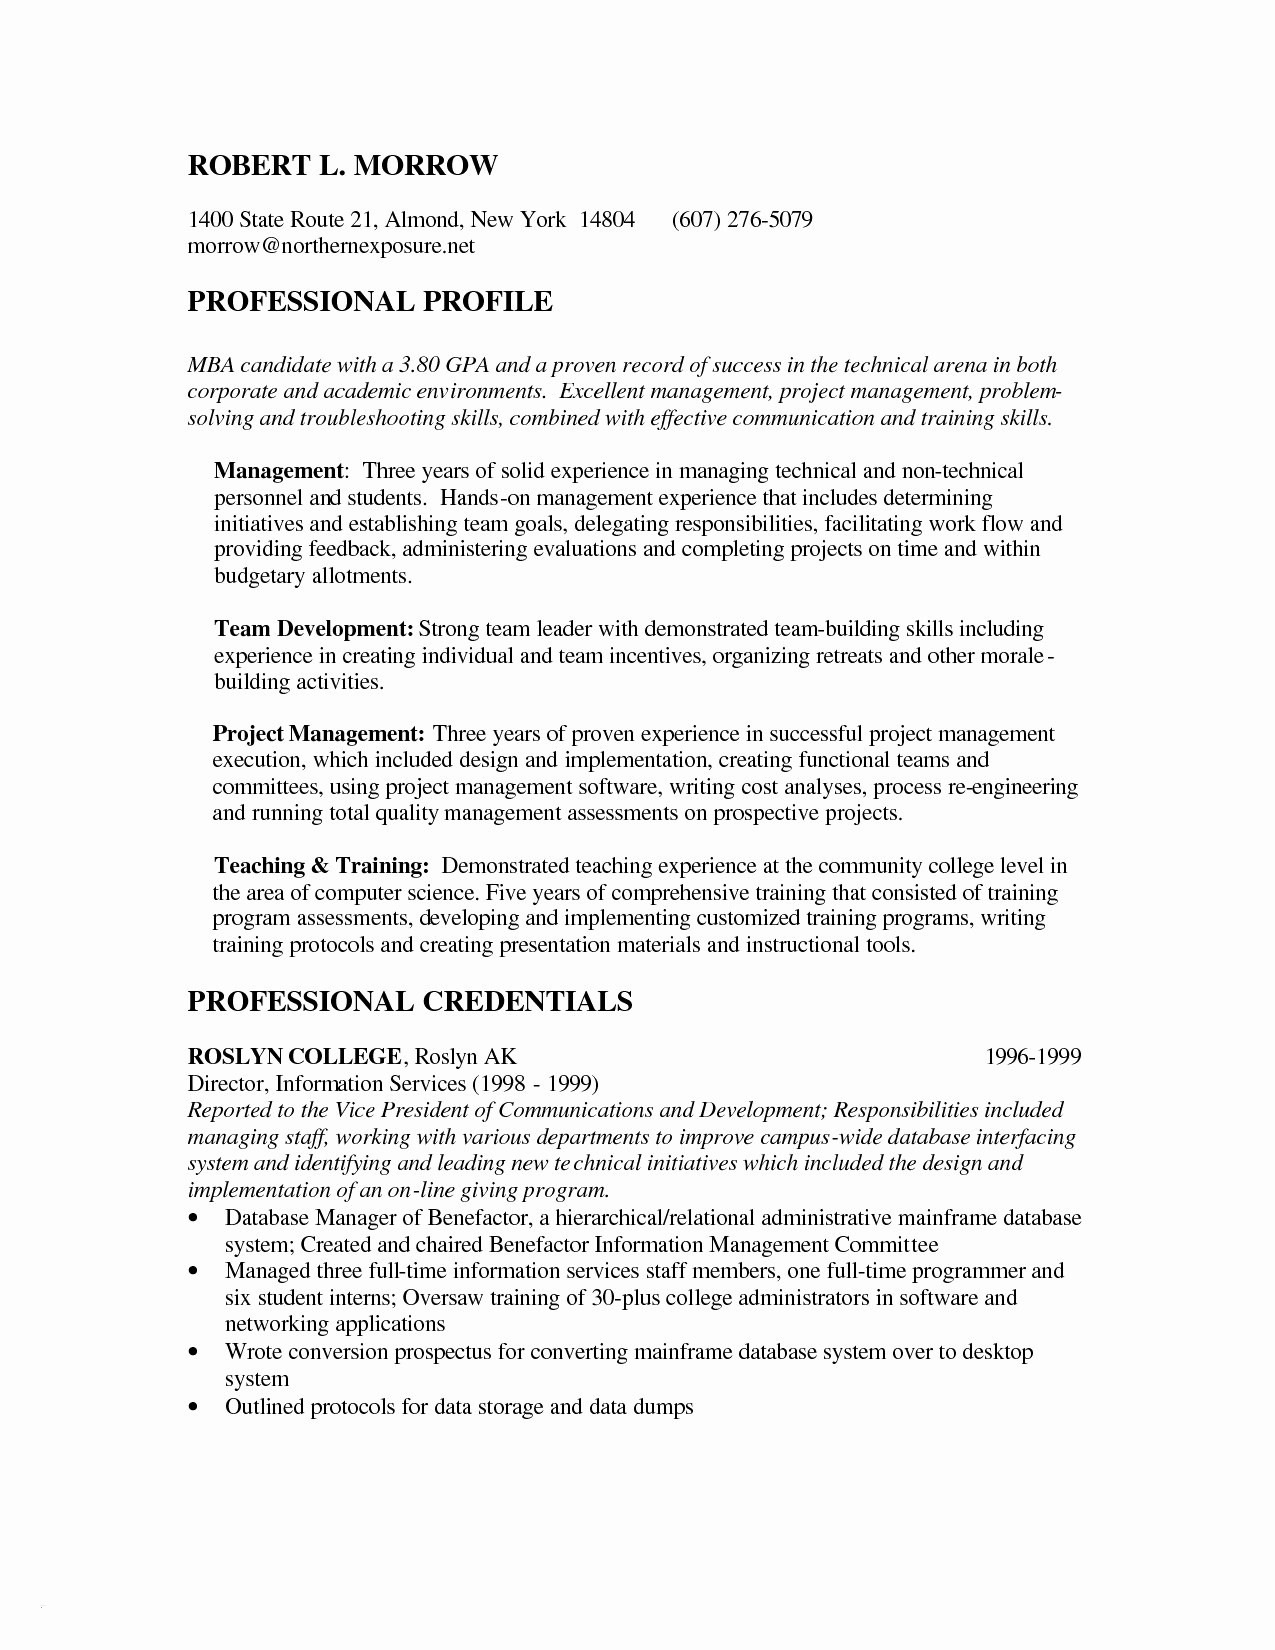 hbs resume template Collection-Mba Application Resume Template Best Mba Resume Template Inspirational Mba Resume Examples Elegant Hbs 9-r